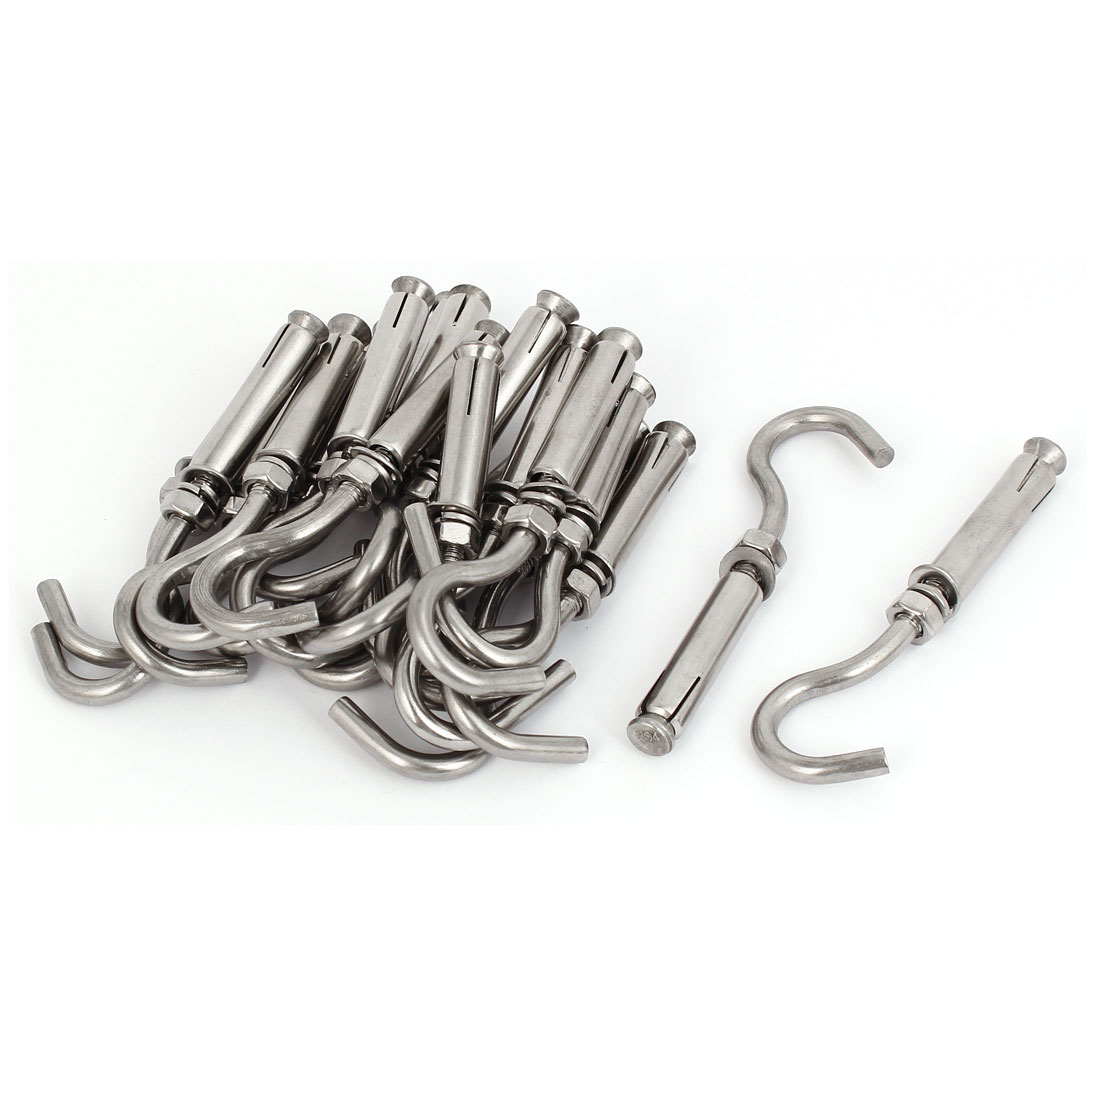 20pcs 304 Stainless Steel Expansion Anchor Bolt Open Cup Hooks M6